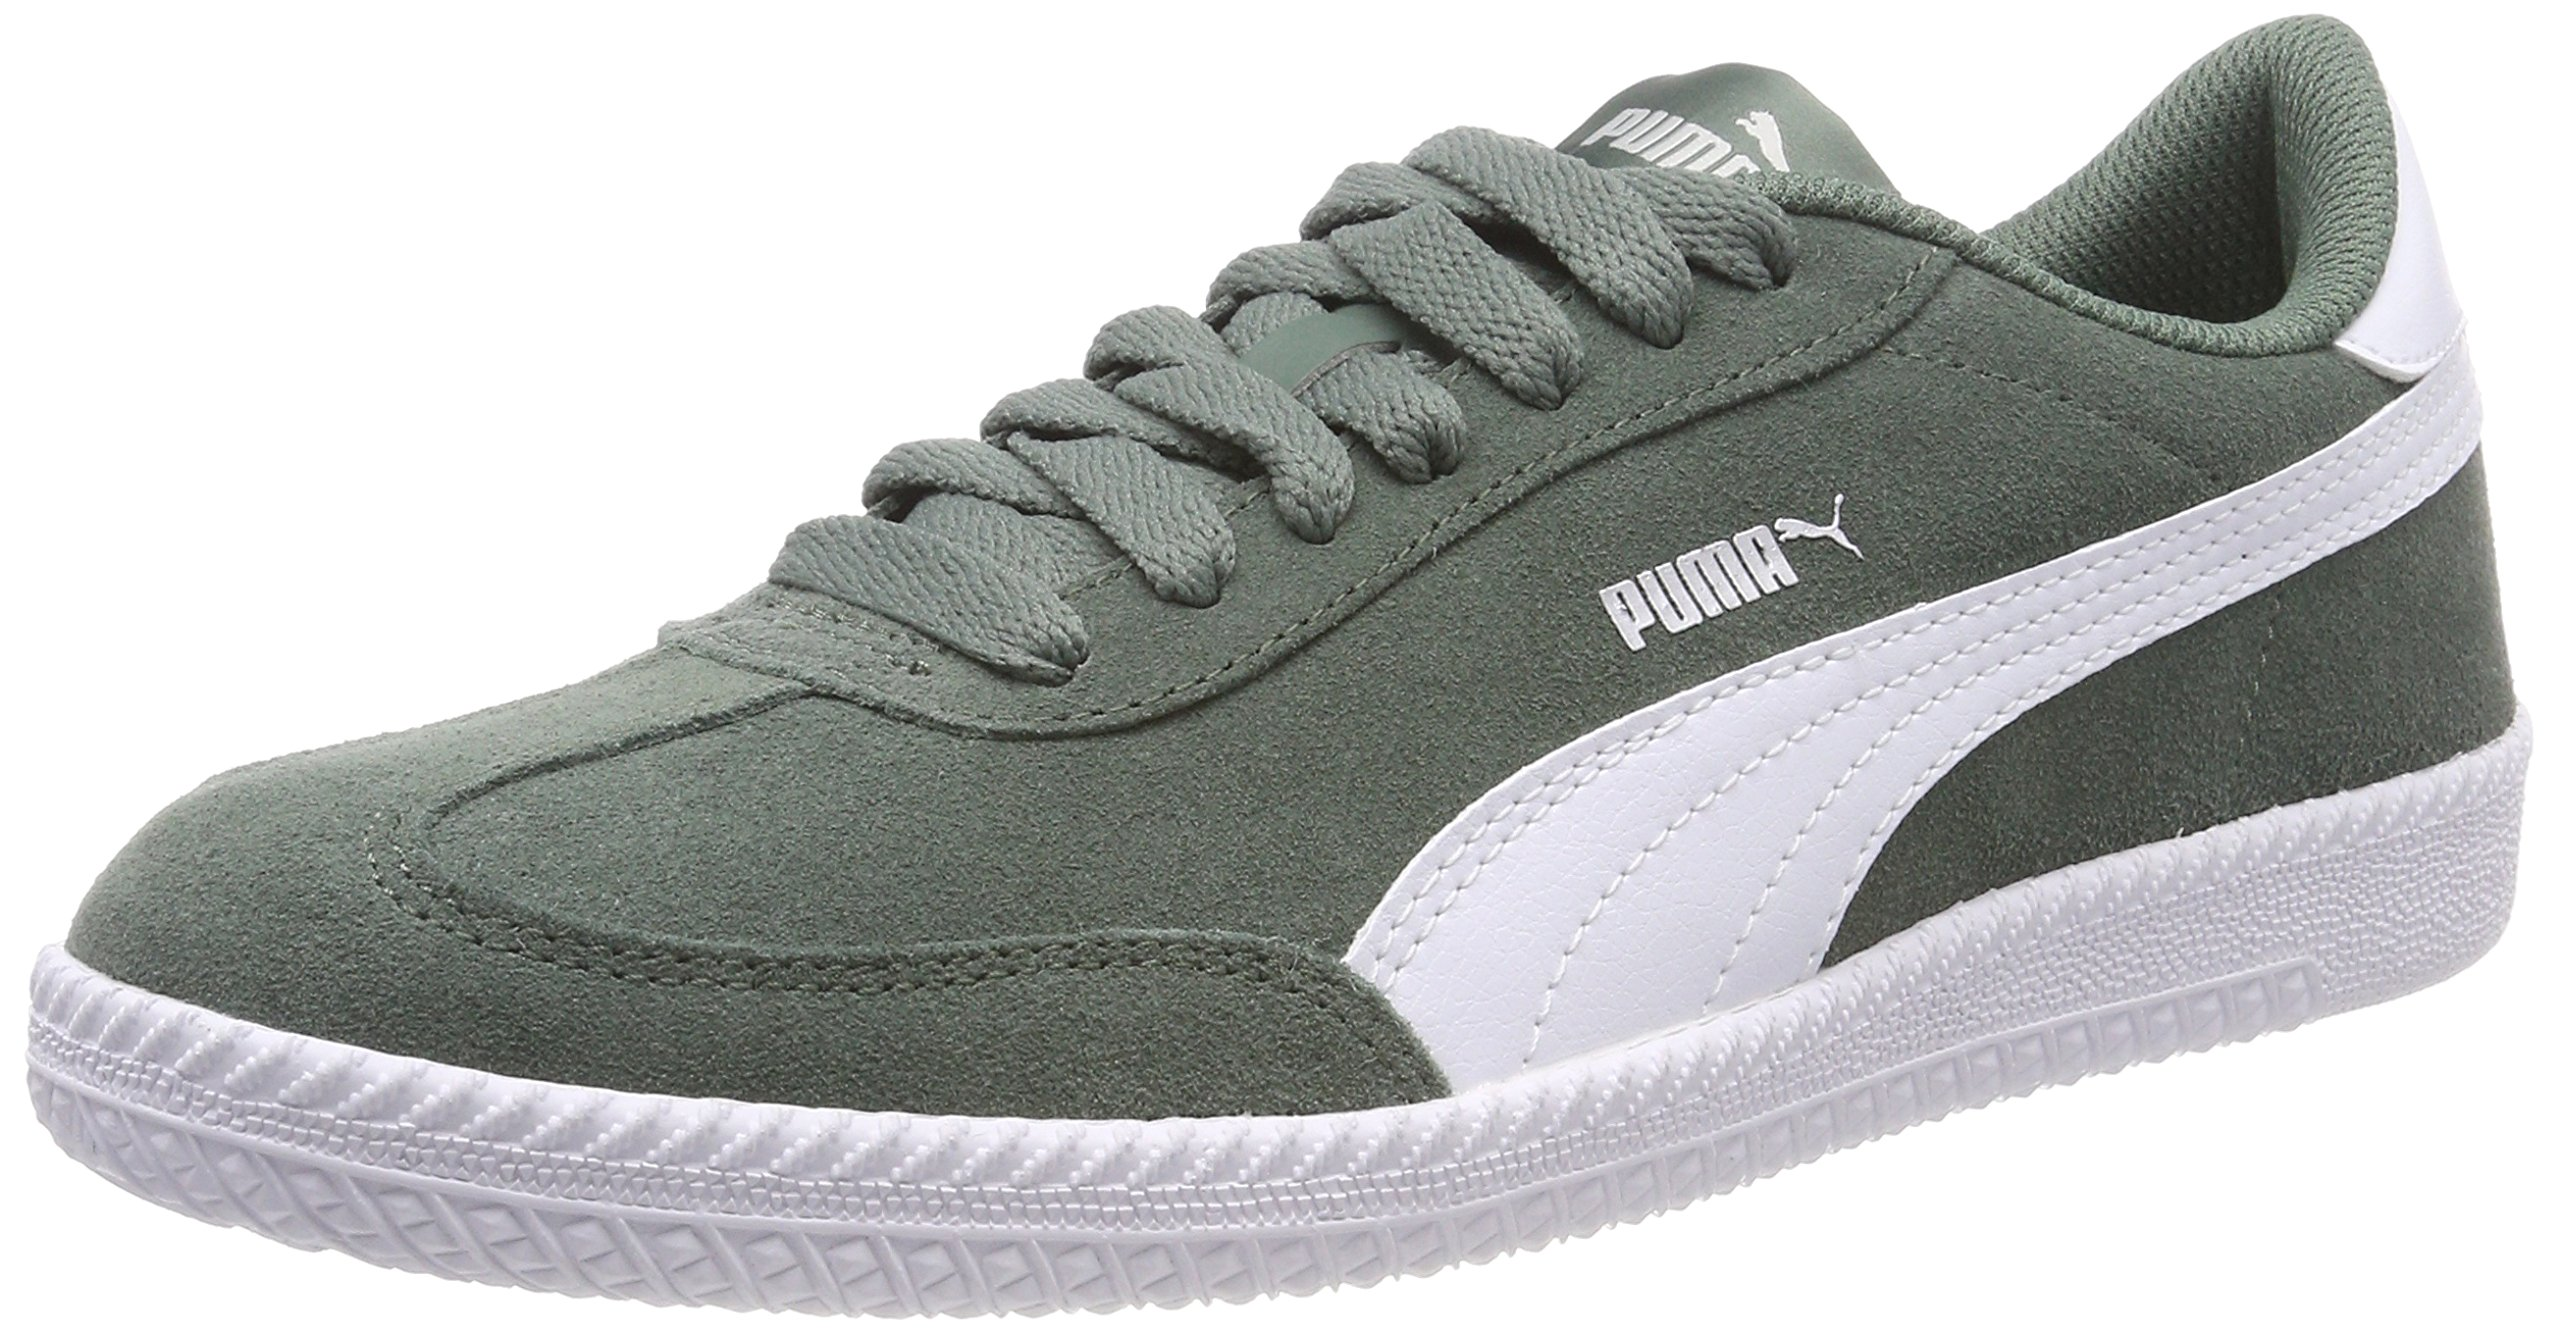 Wreath Eu Basses White42 Puma Astro AdulteGrislaurel 5 Mixte CupSneakers N08Omwvn